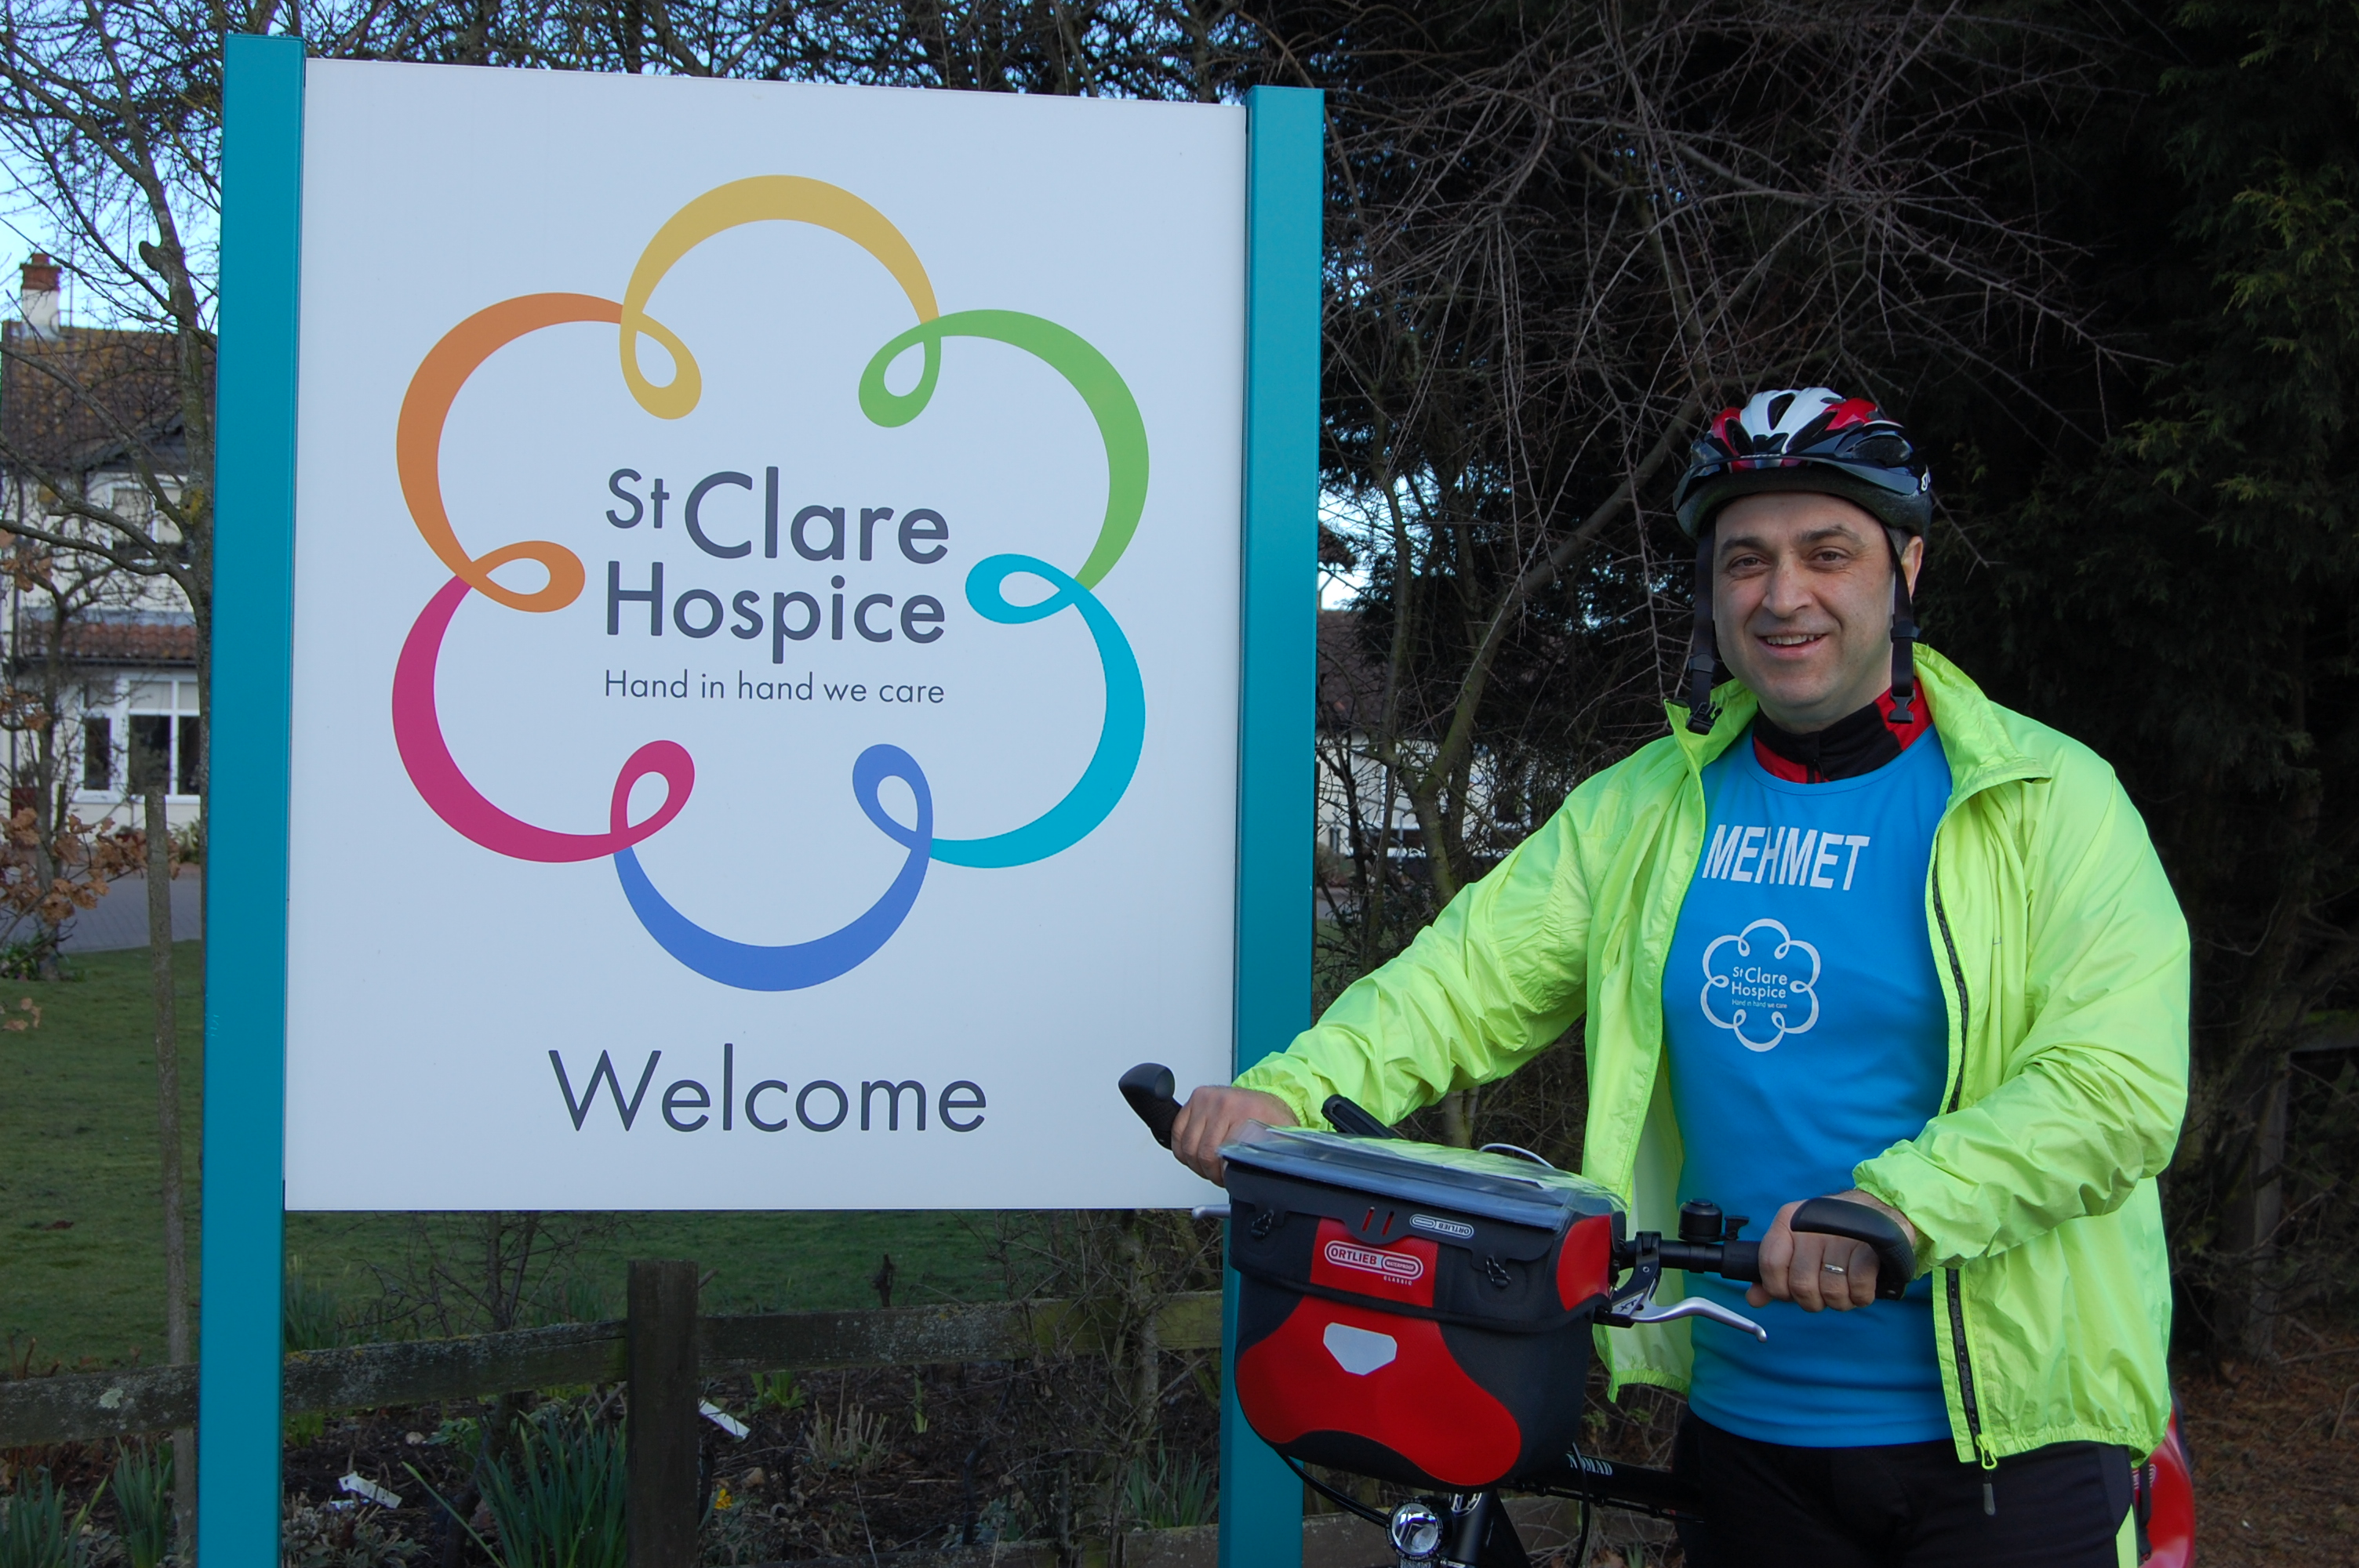 Mehmet Cakmak outside St Clare Hospice